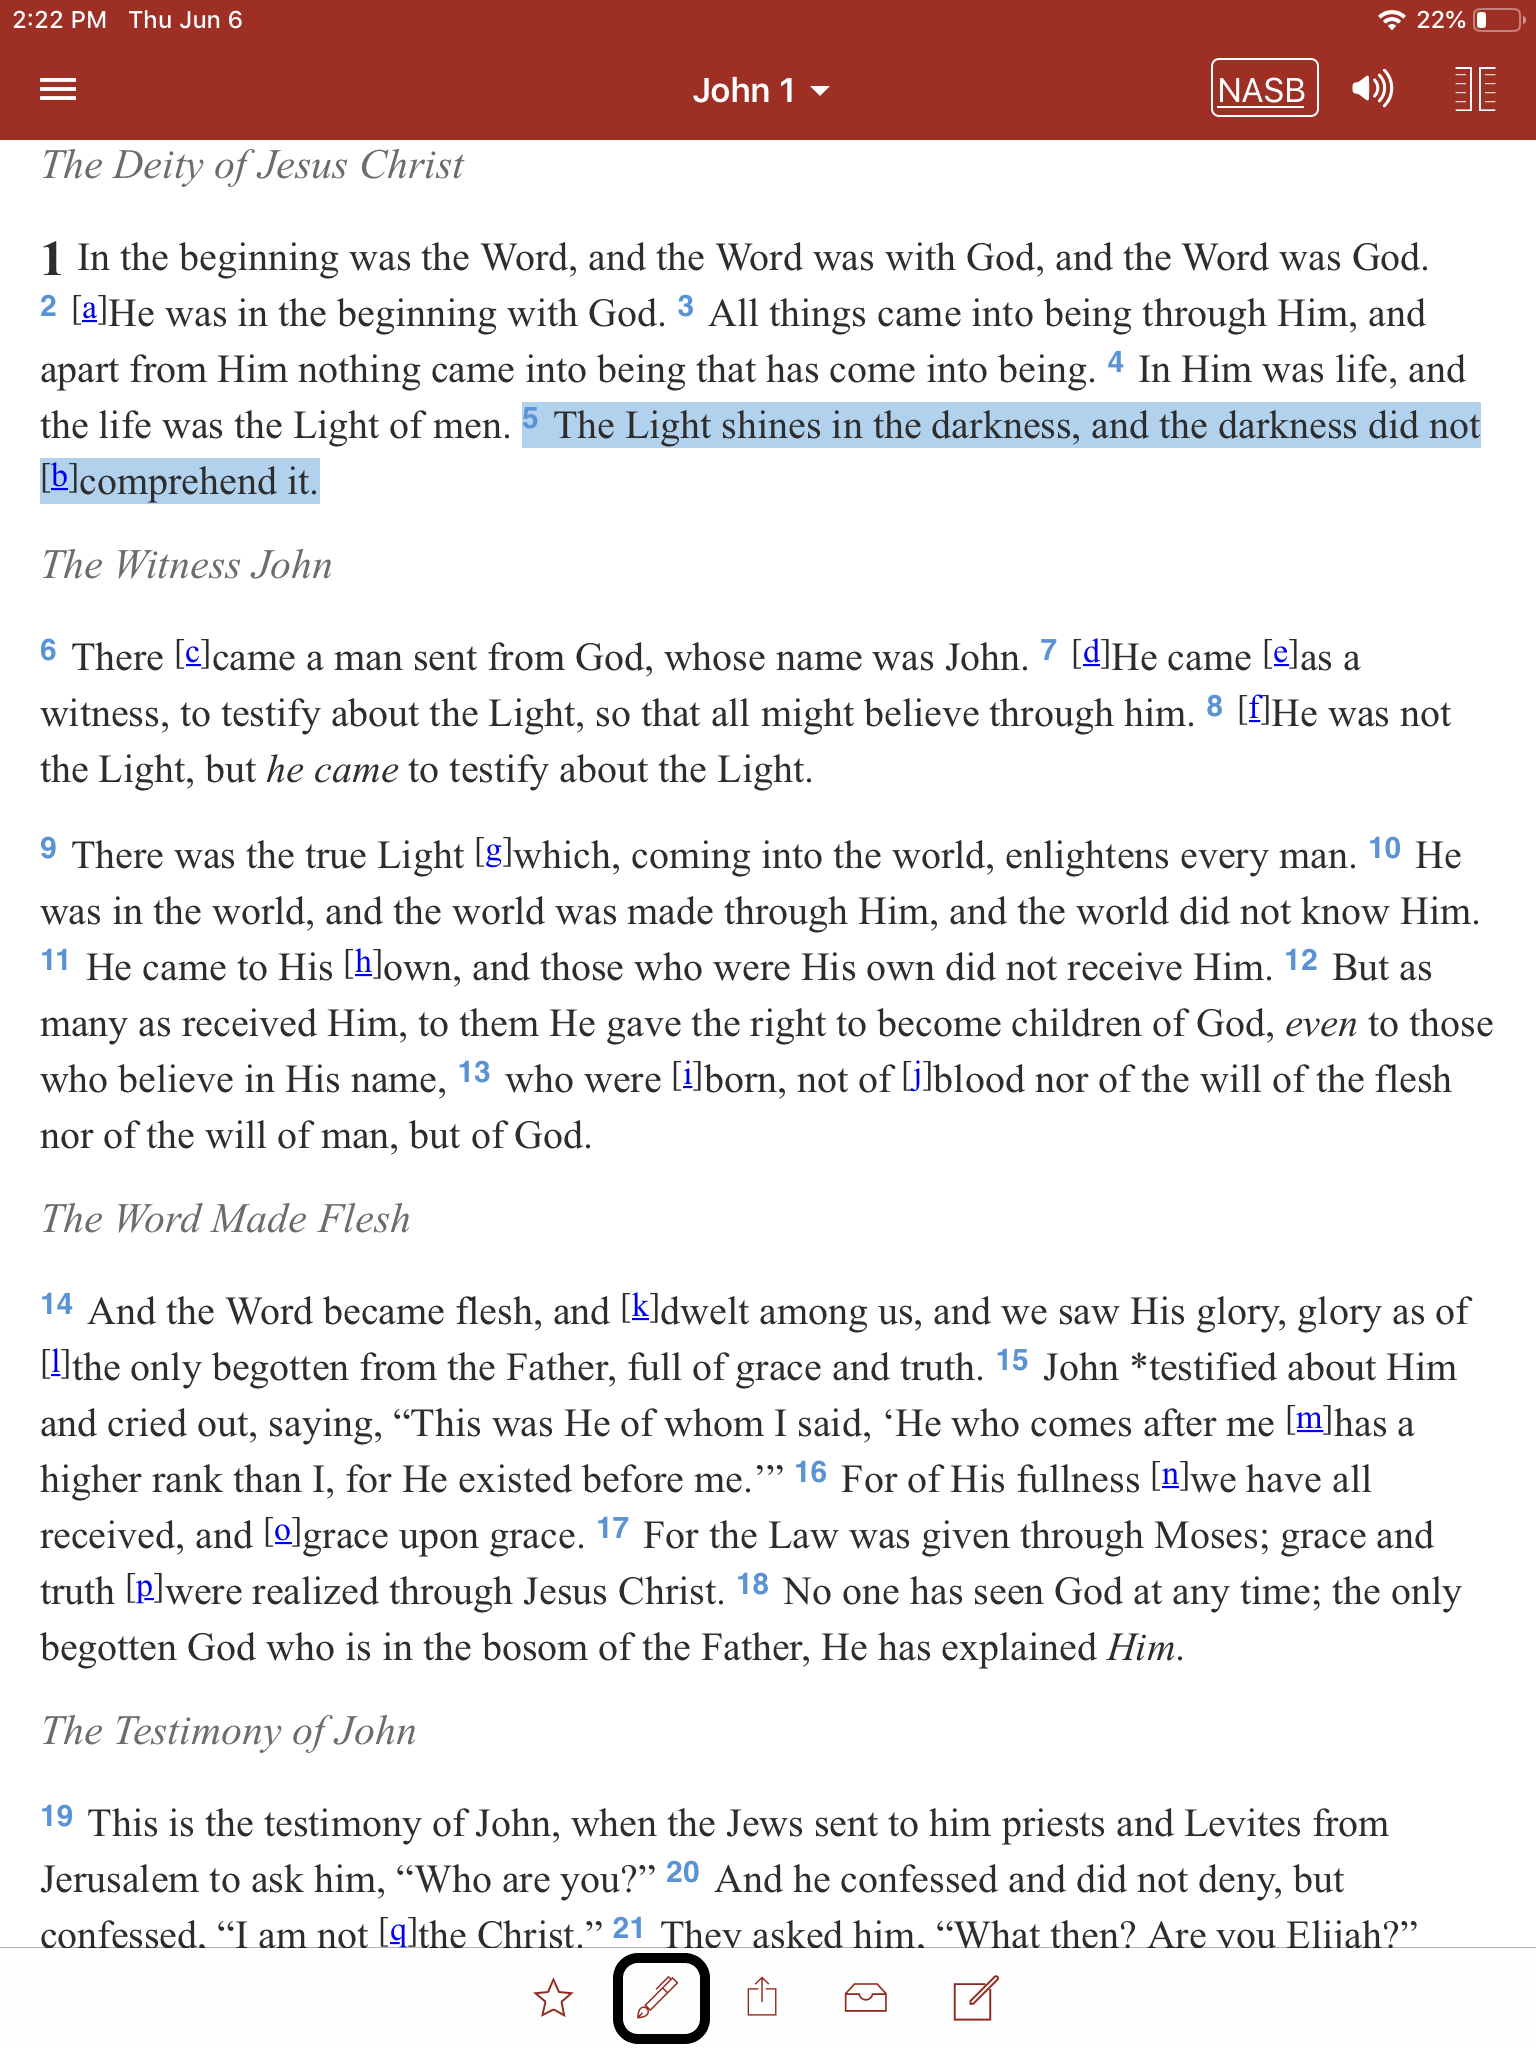 BG_iOS_Bible_Screen_with_Highlight_Box.png